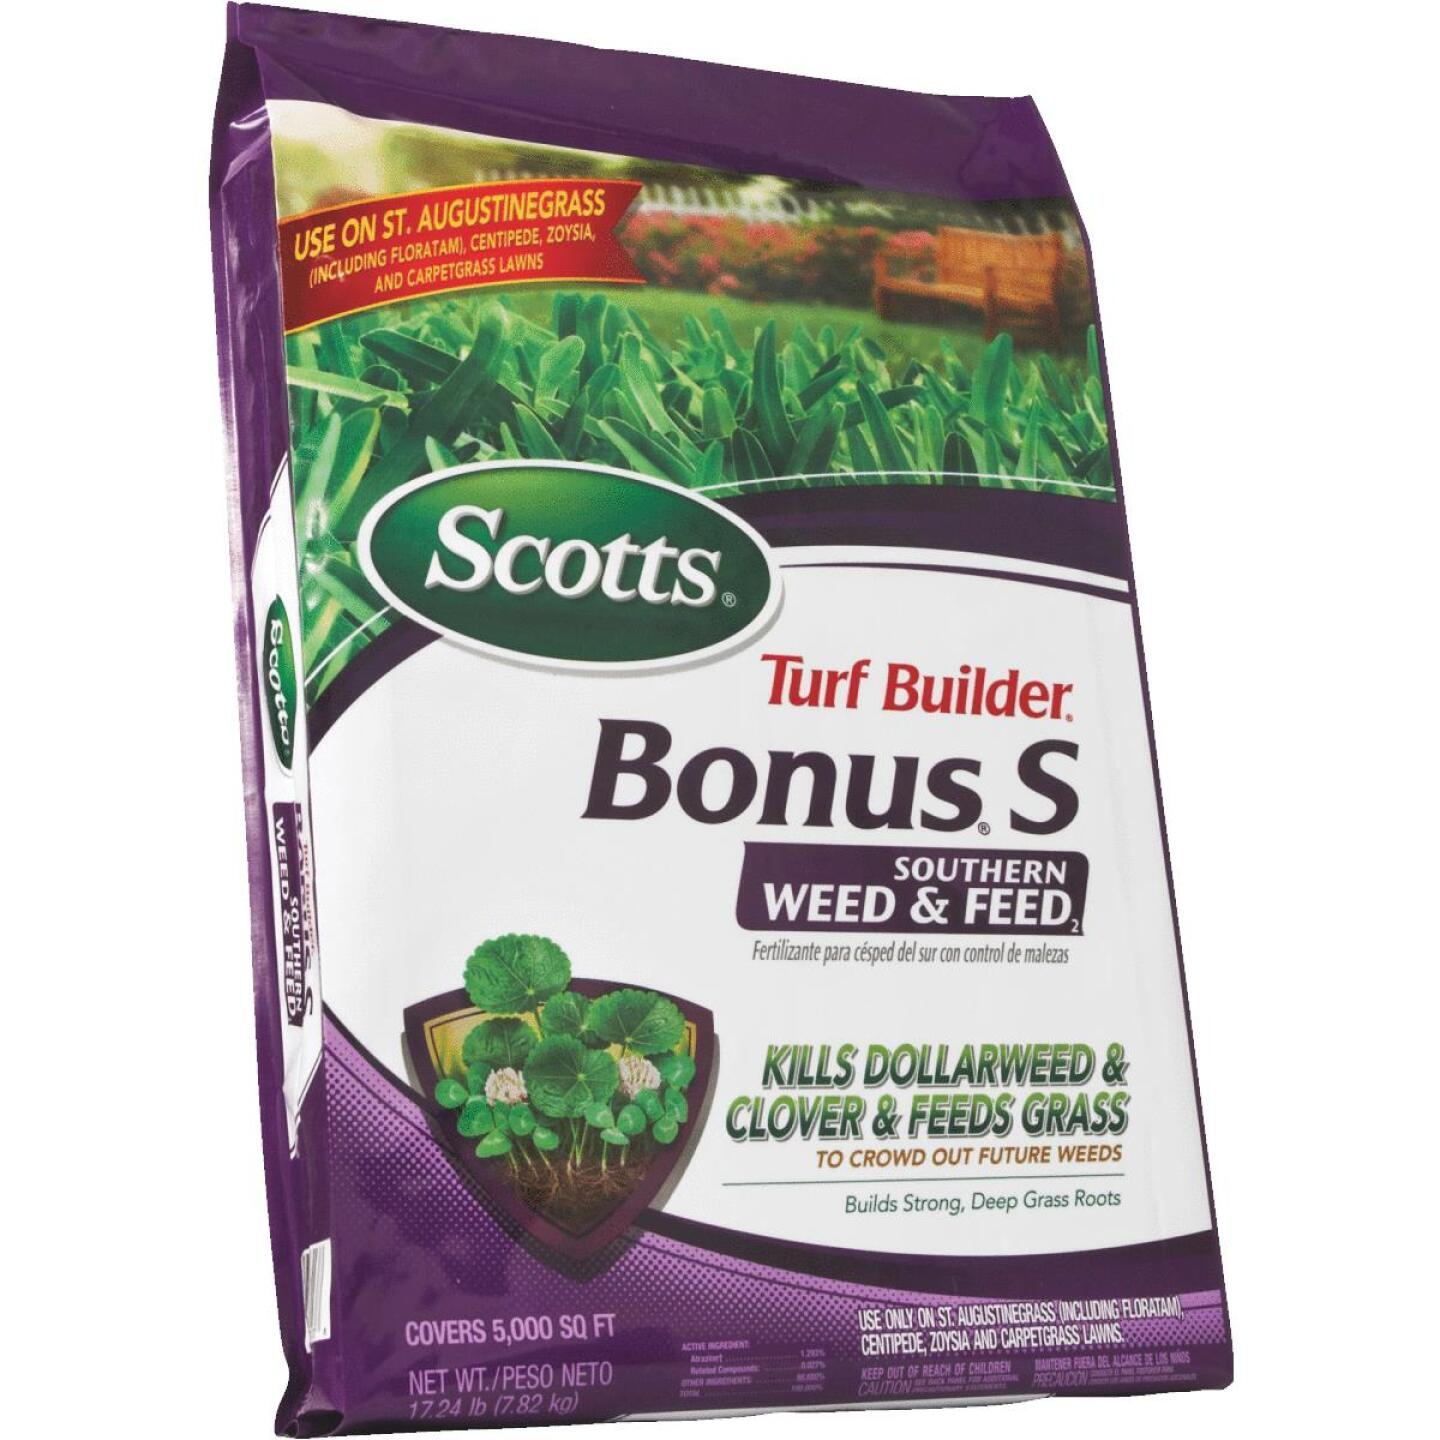 Scotts Turf Builder Bonus S Southern Weed & Feed 18.62 Lb. 5000 Sq. Ft. 29-0-10 Lawn Fertilizer with Weed Killer Image 5